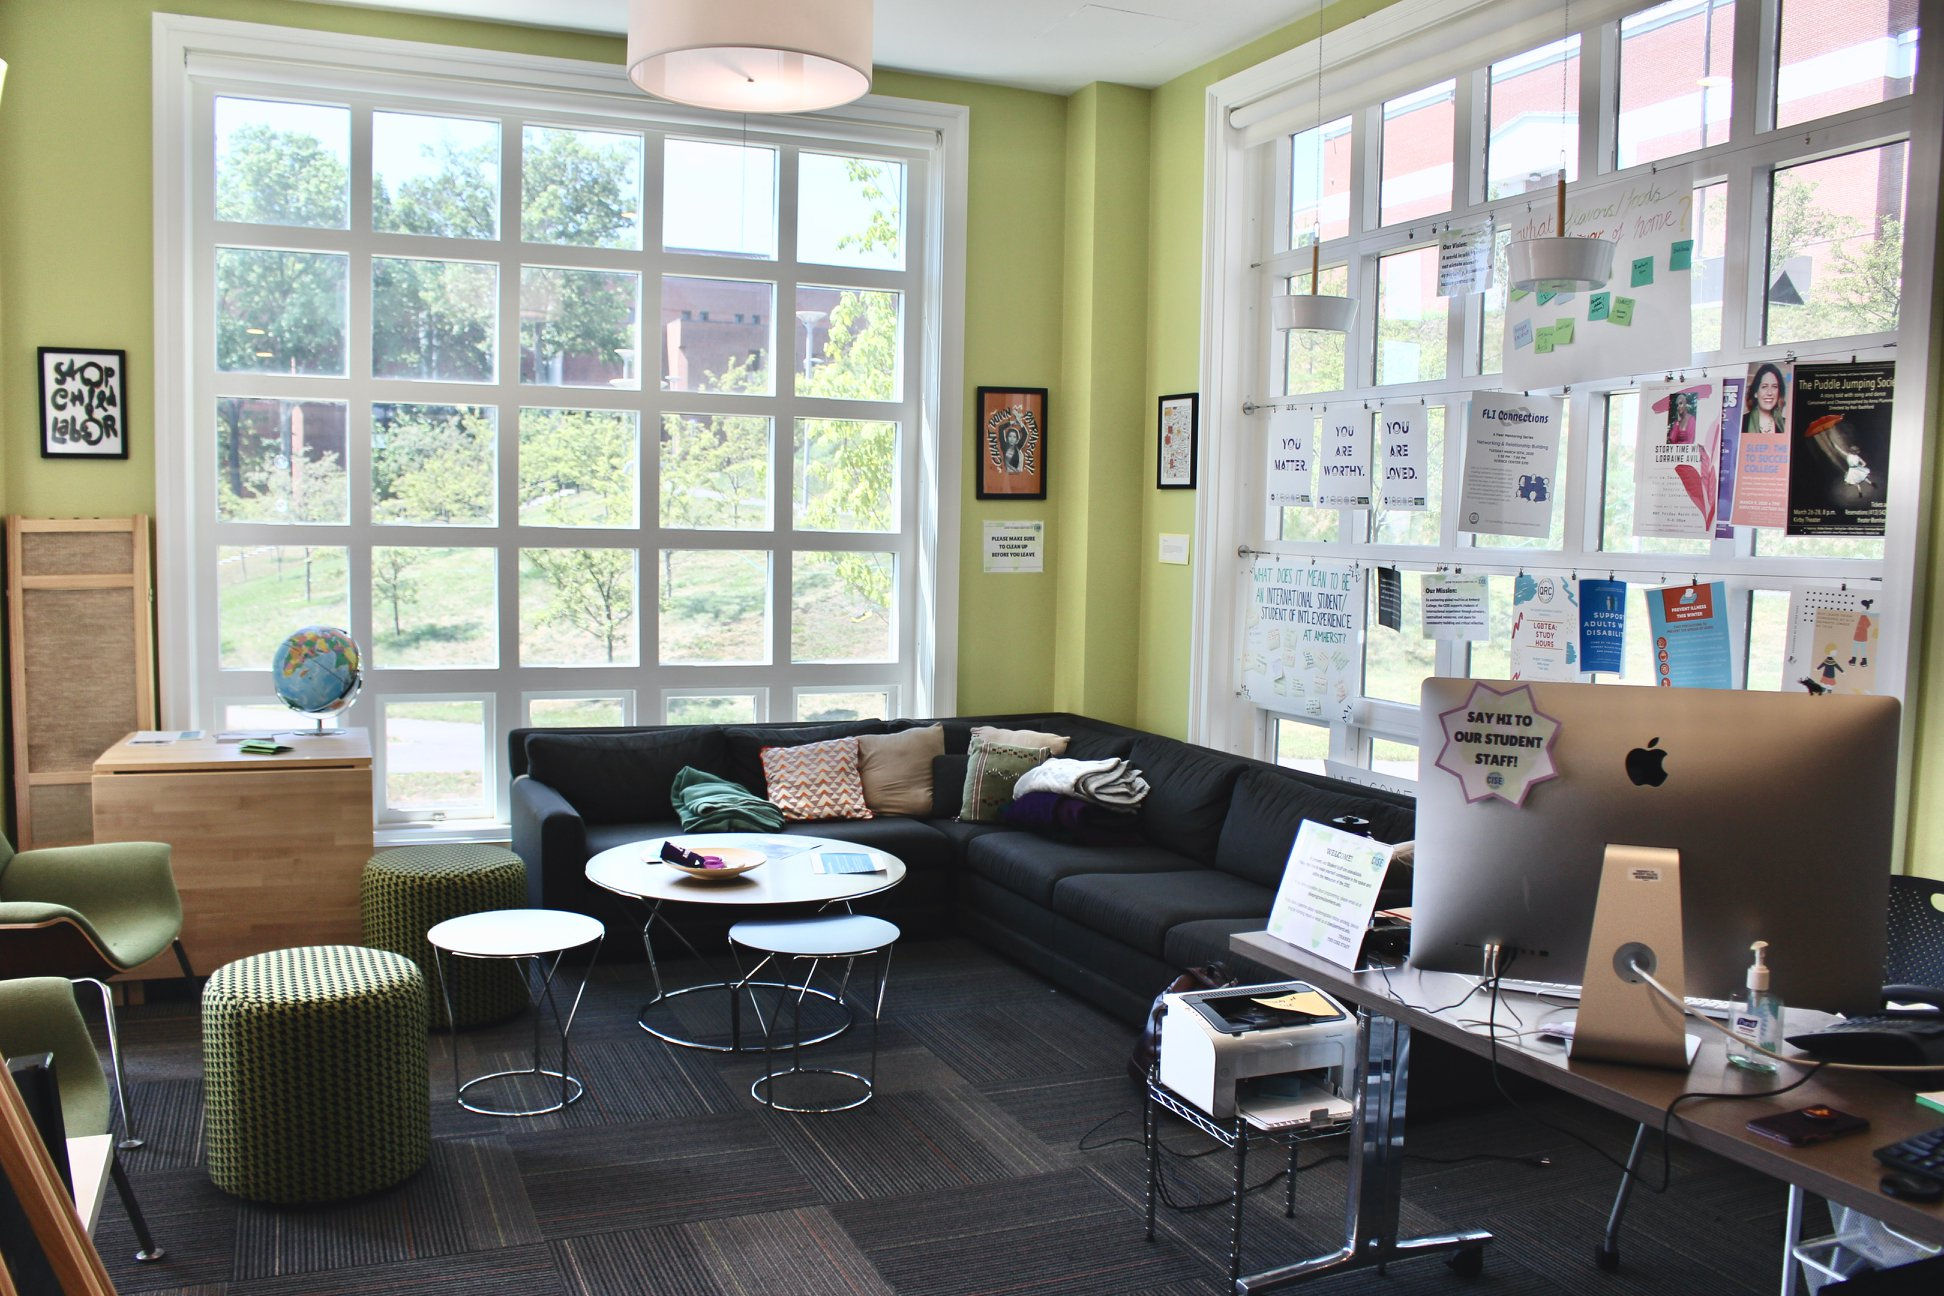 The CISE community space